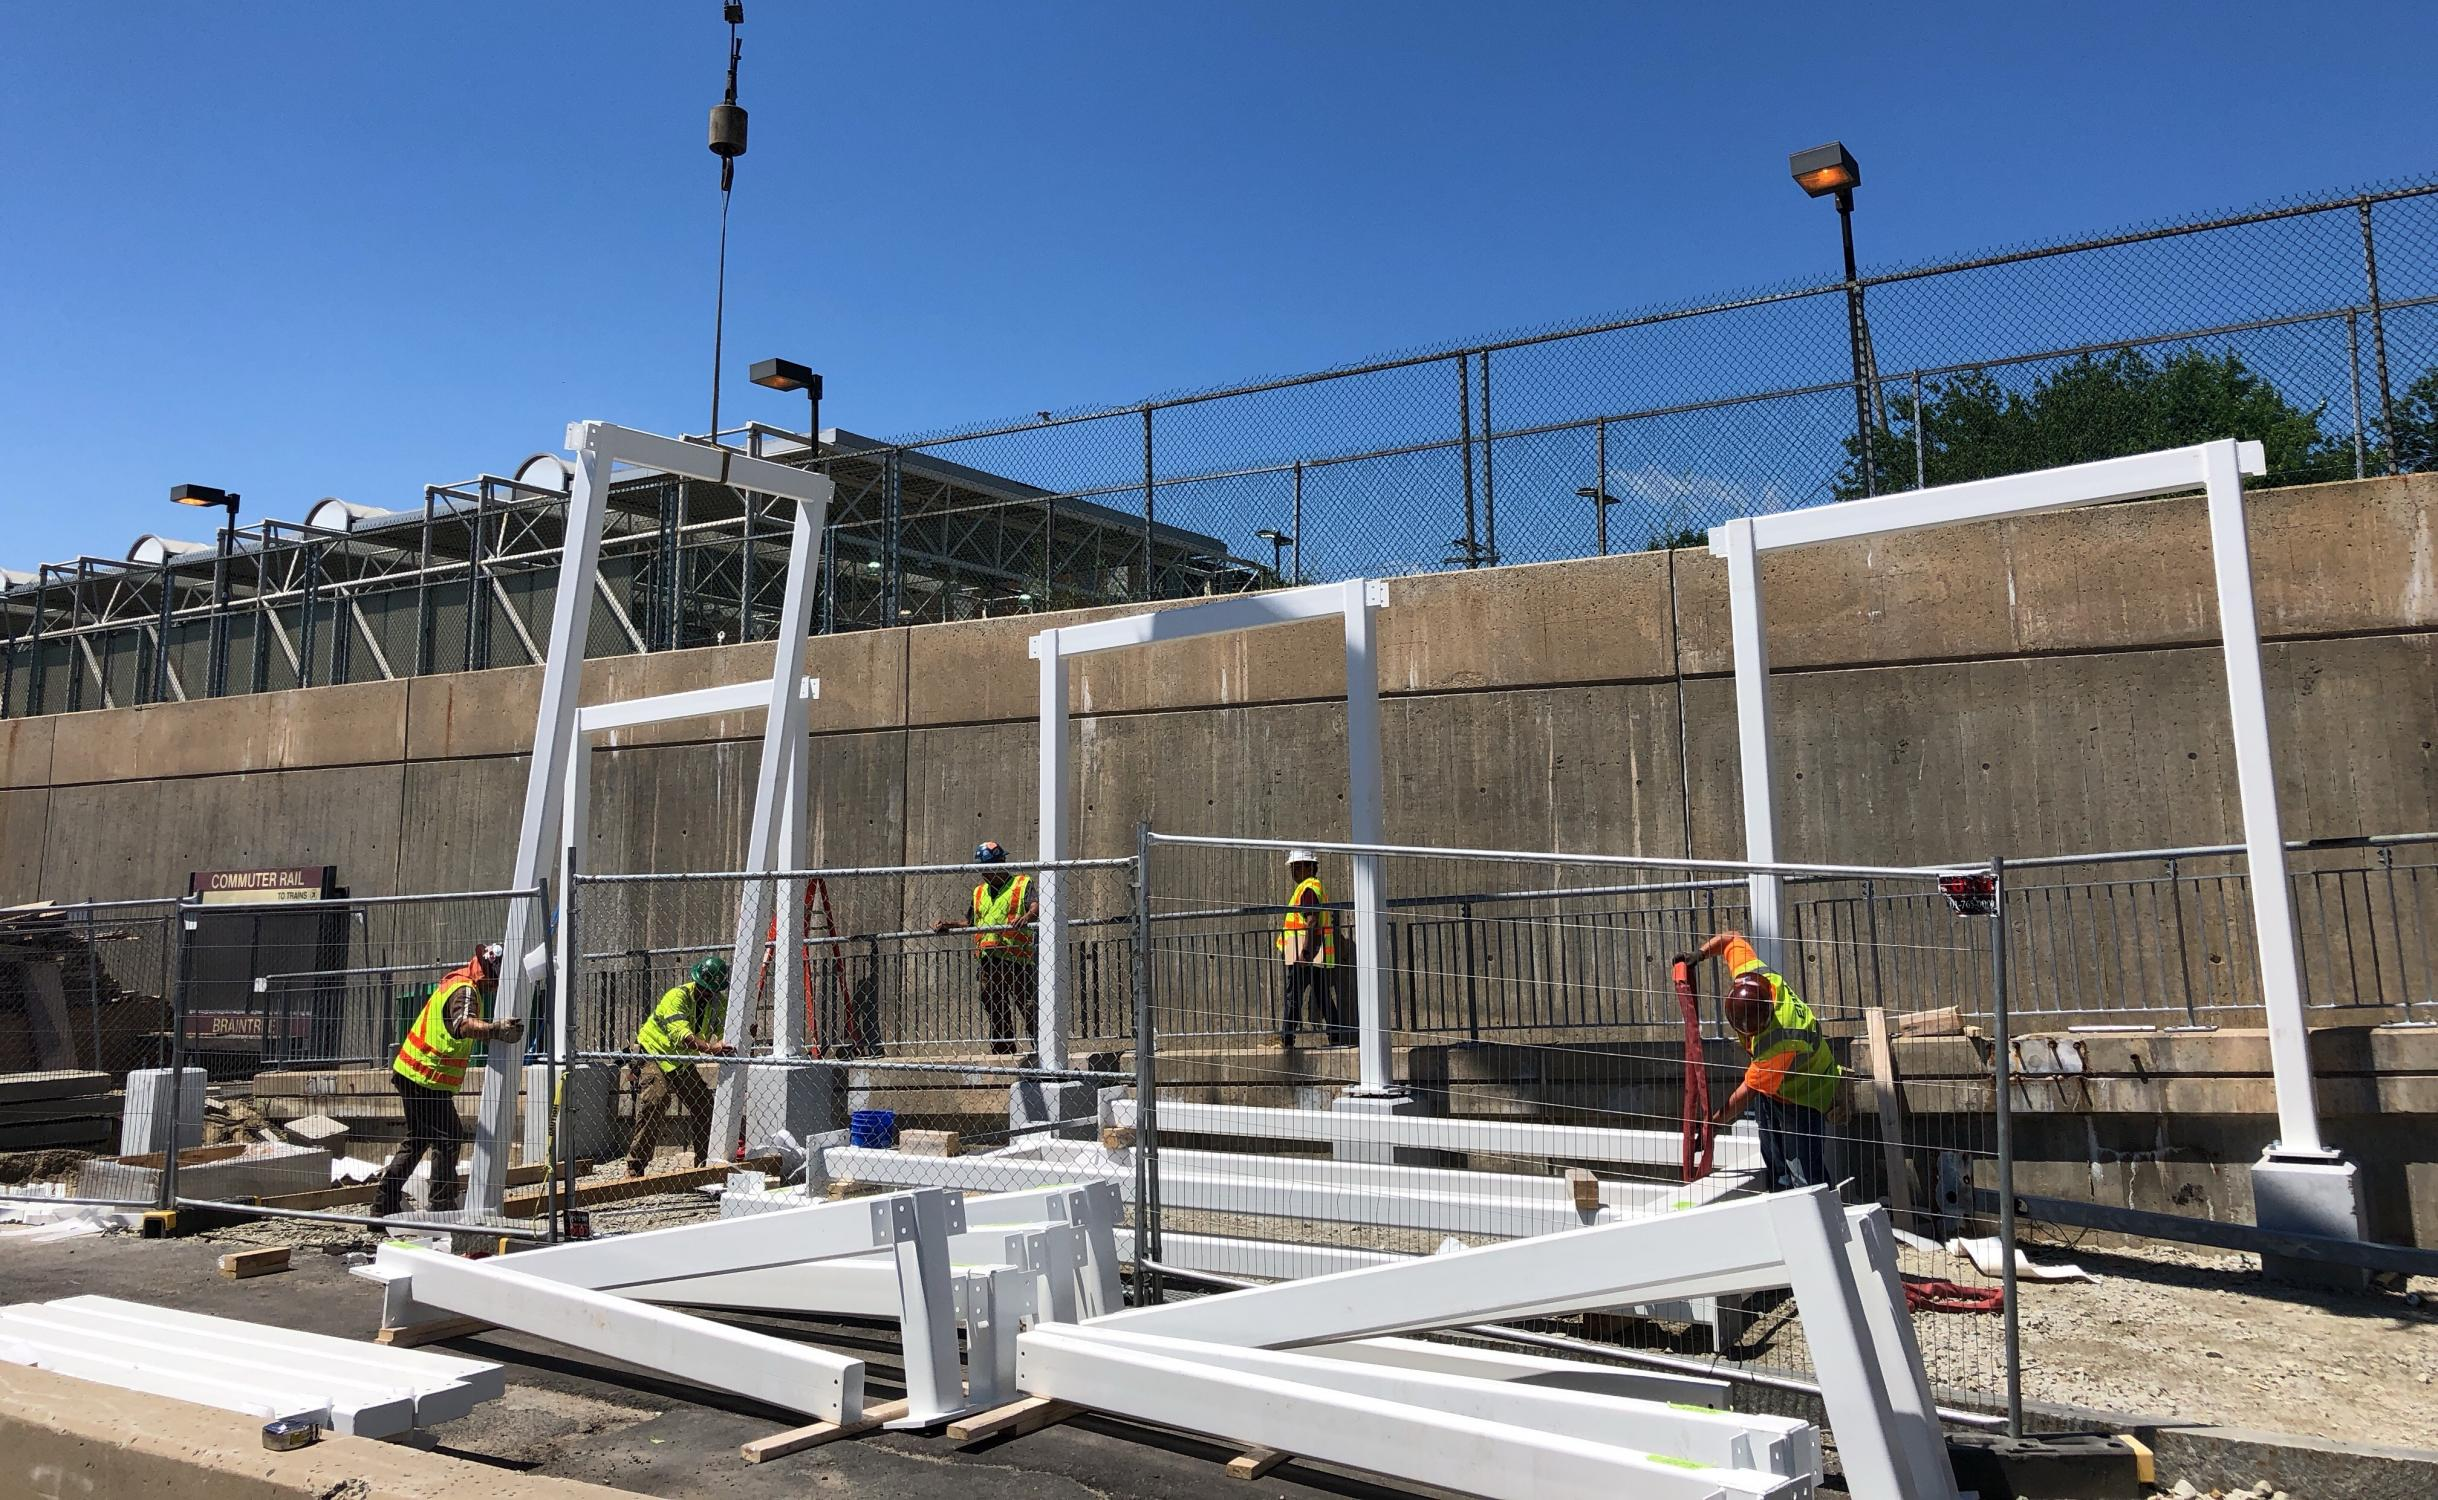 A crew assembles the canopy over the pedestrian ramp leading to the Commuter Rail platform.